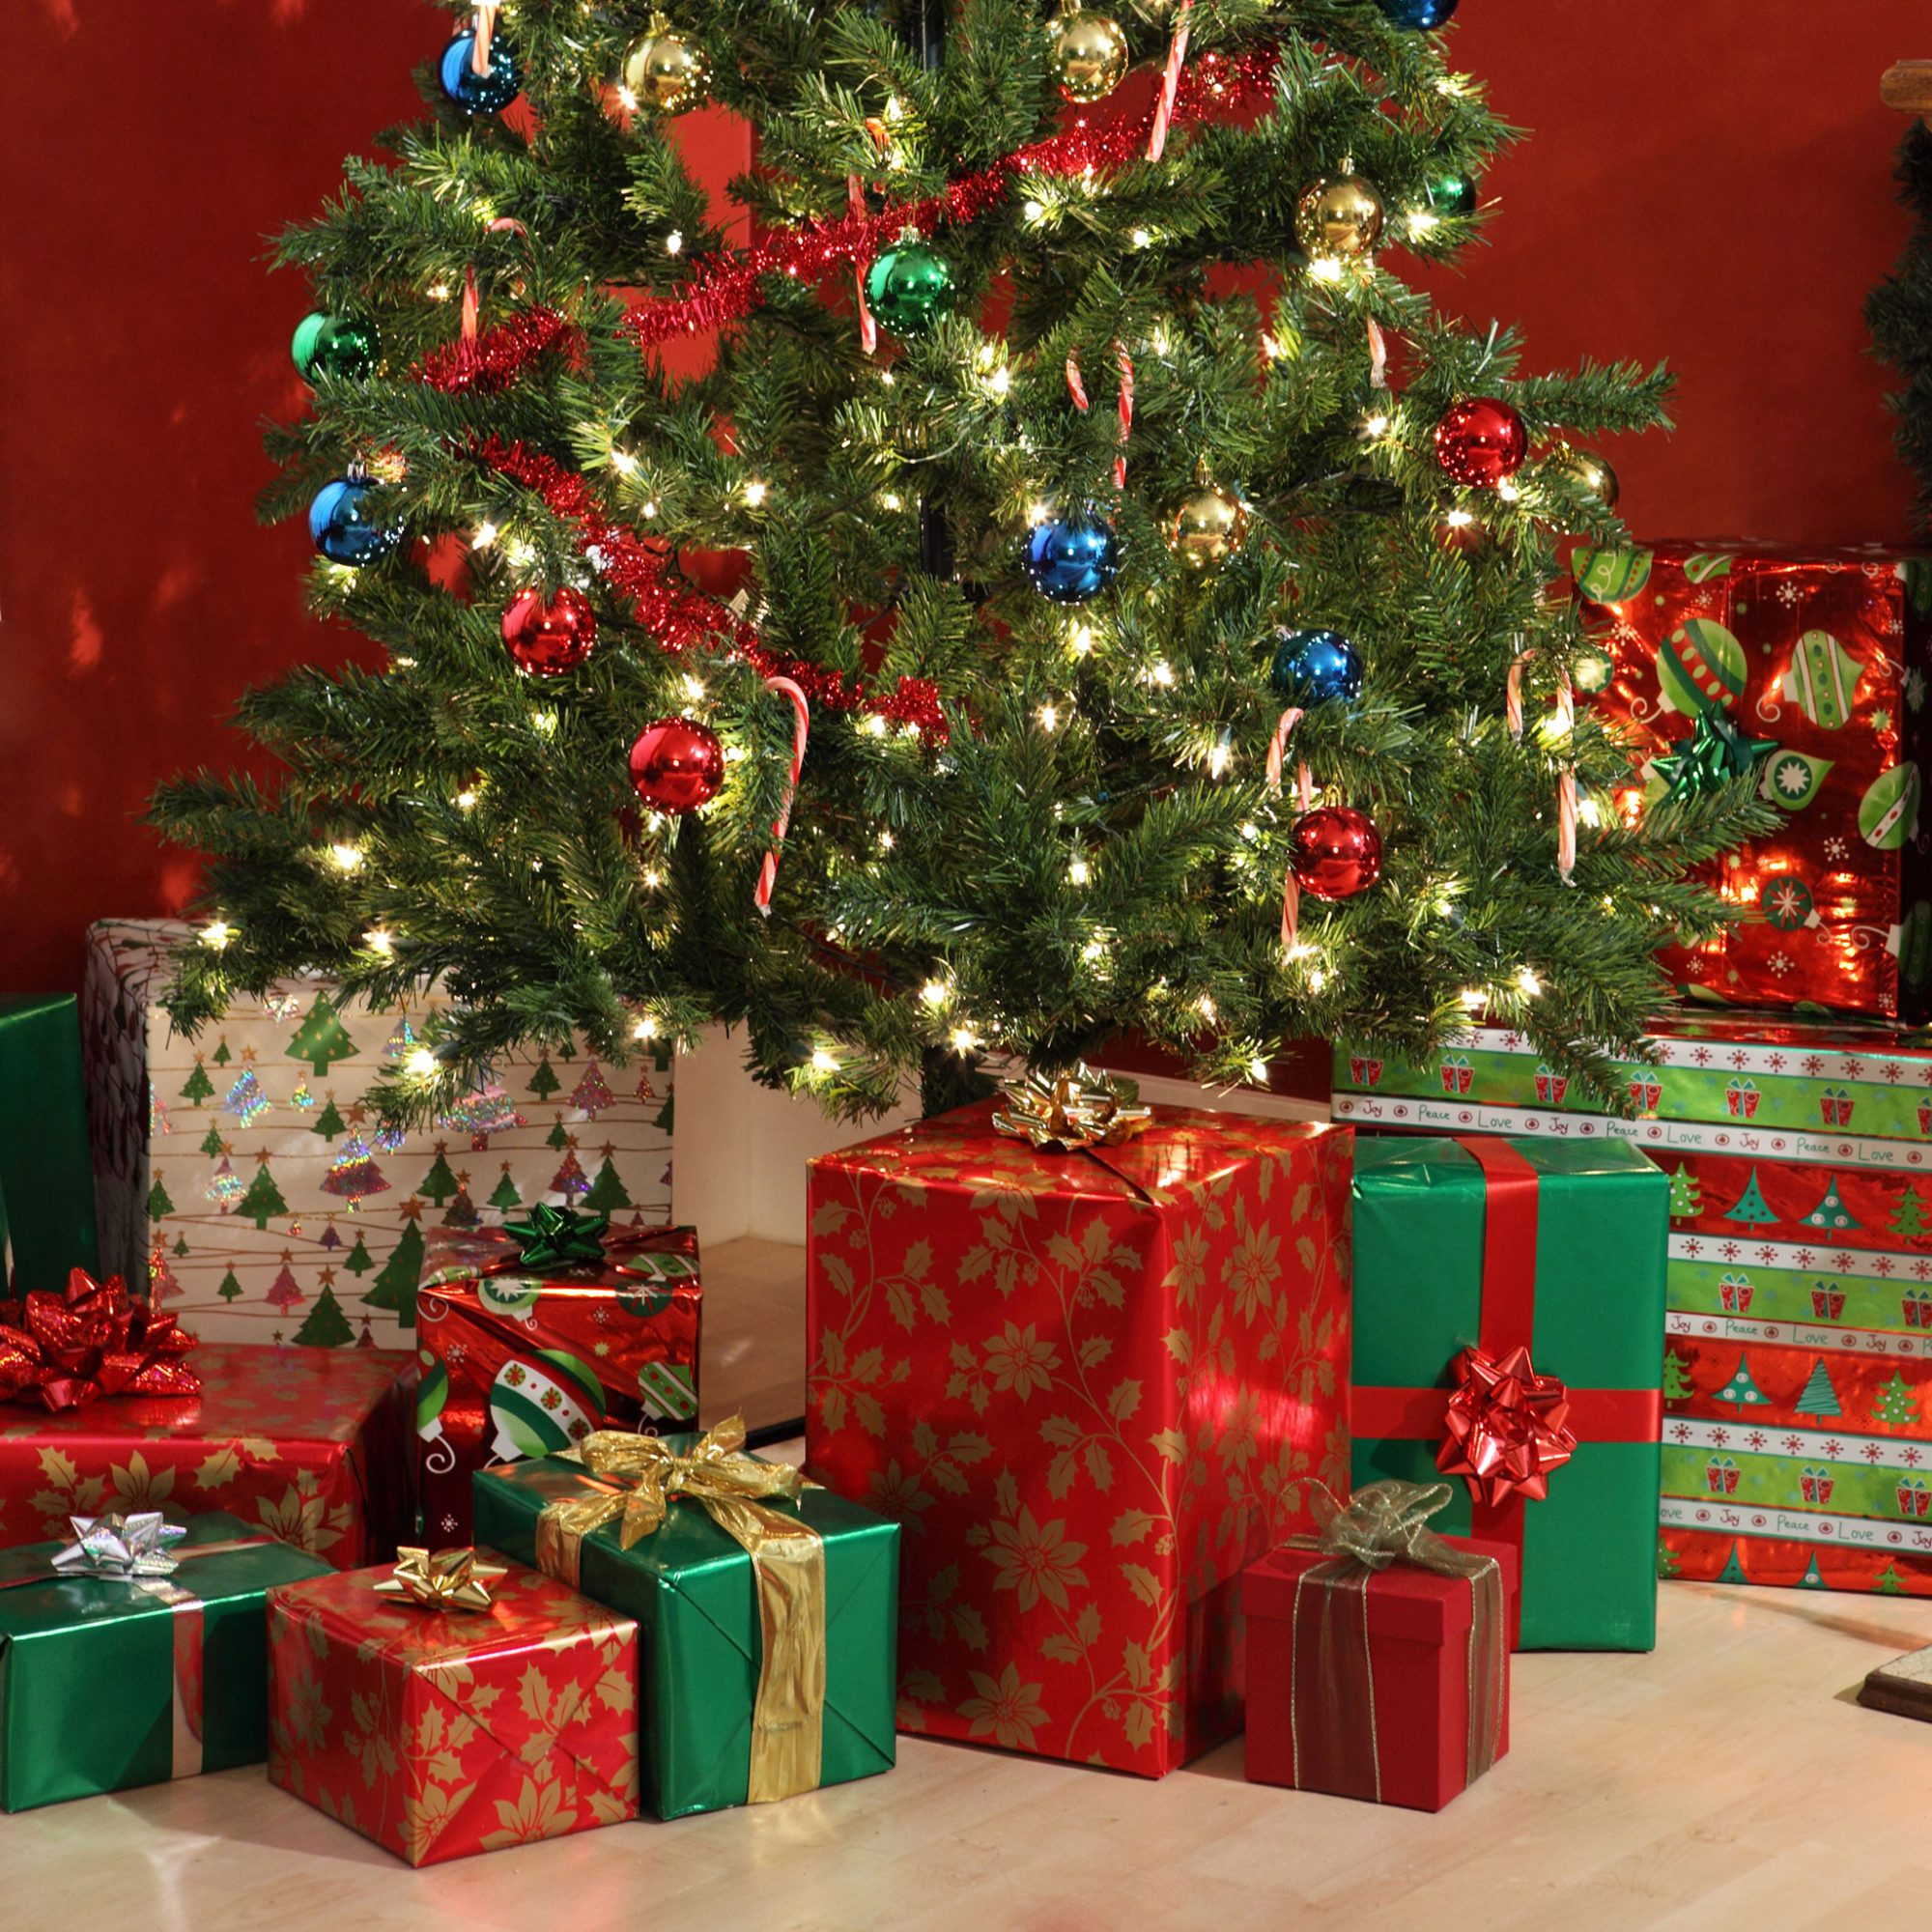 Smart Christmas Trees May Help You Go Green for the ...